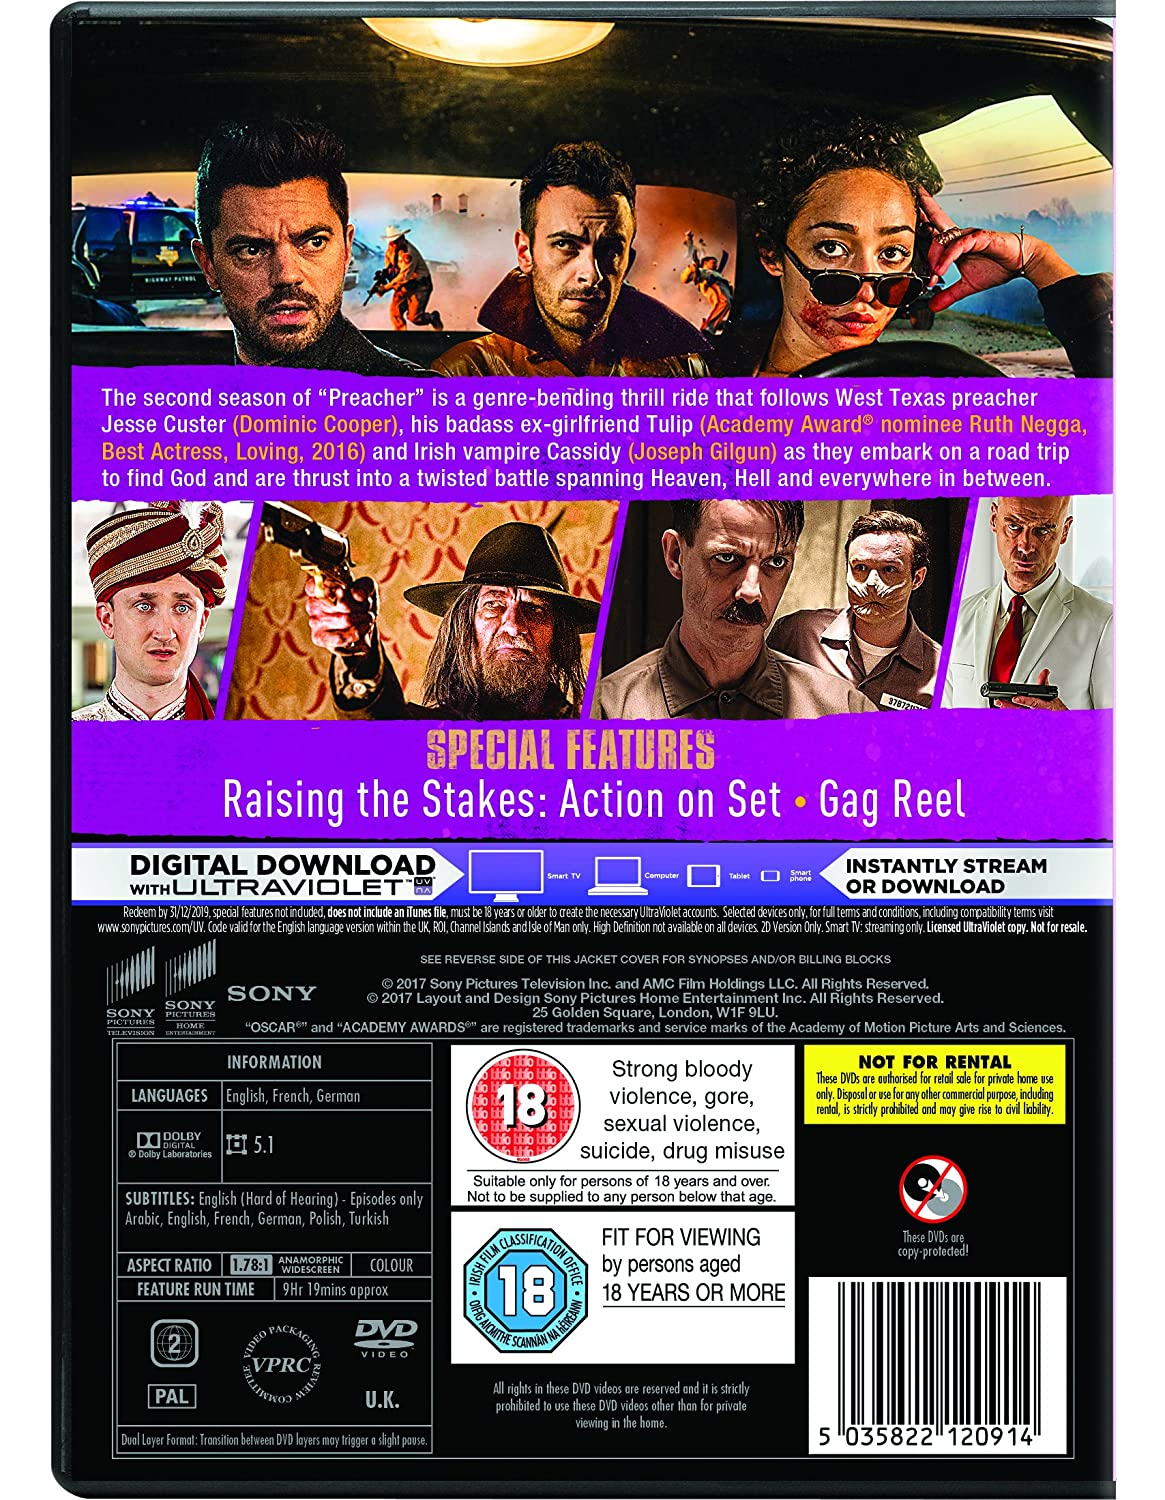 Sony pictures home entertainment australia dvd movies